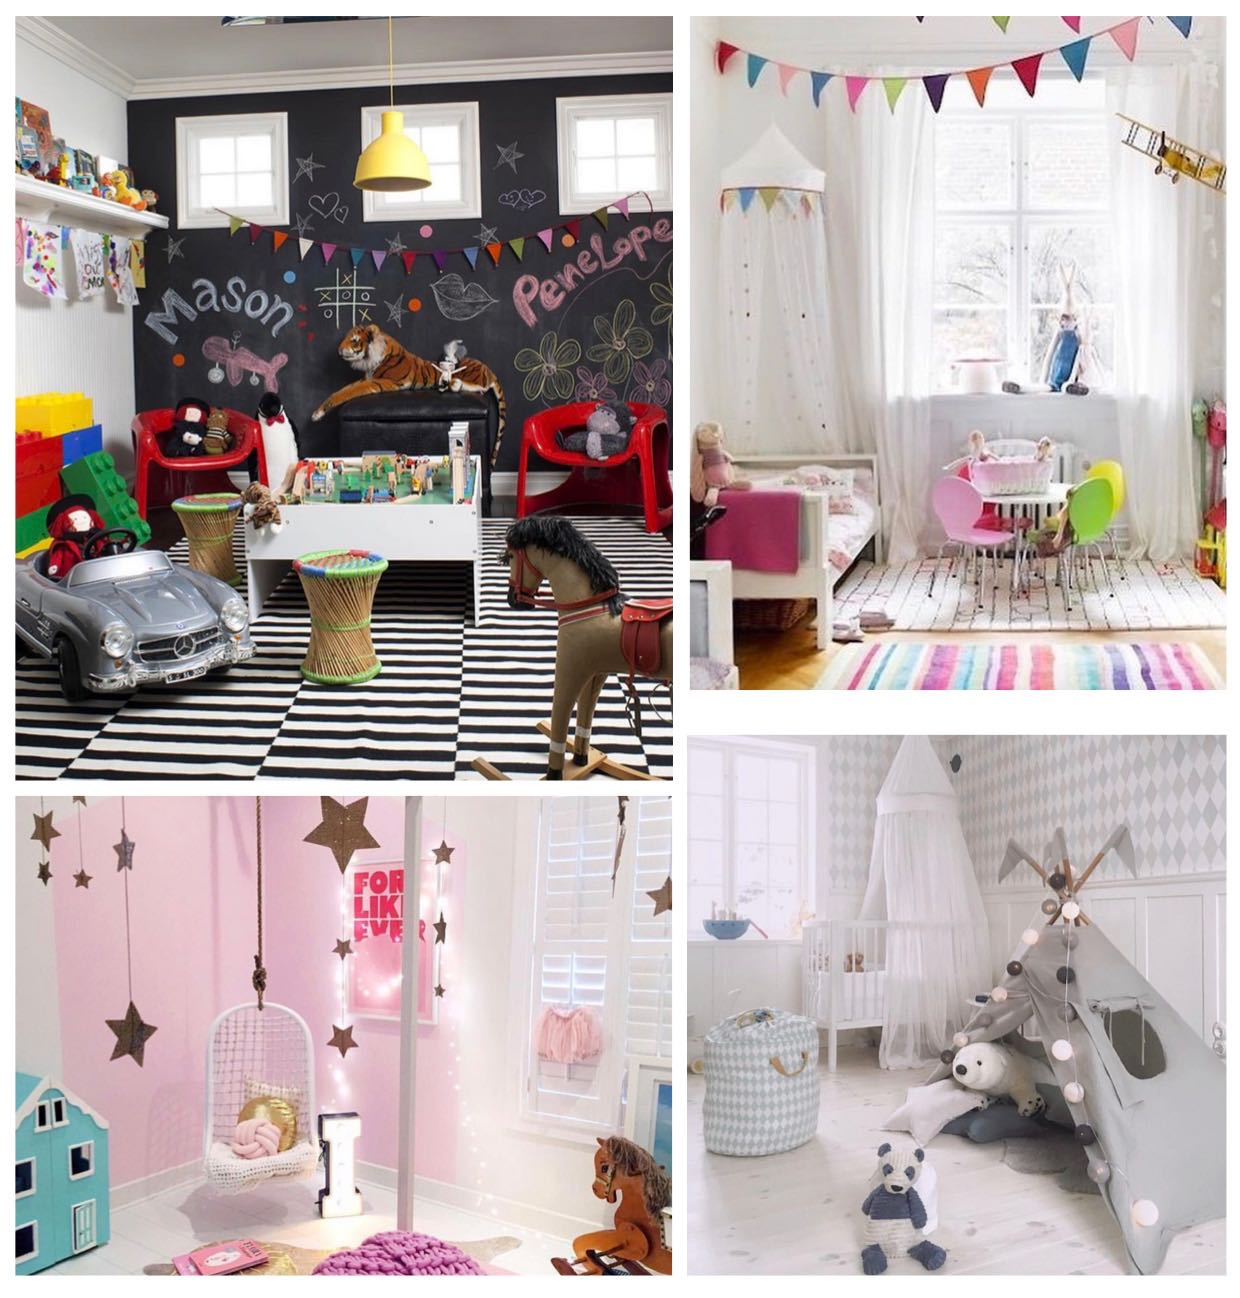 kids room ideas children's room inspirations how to decorate a kid's room